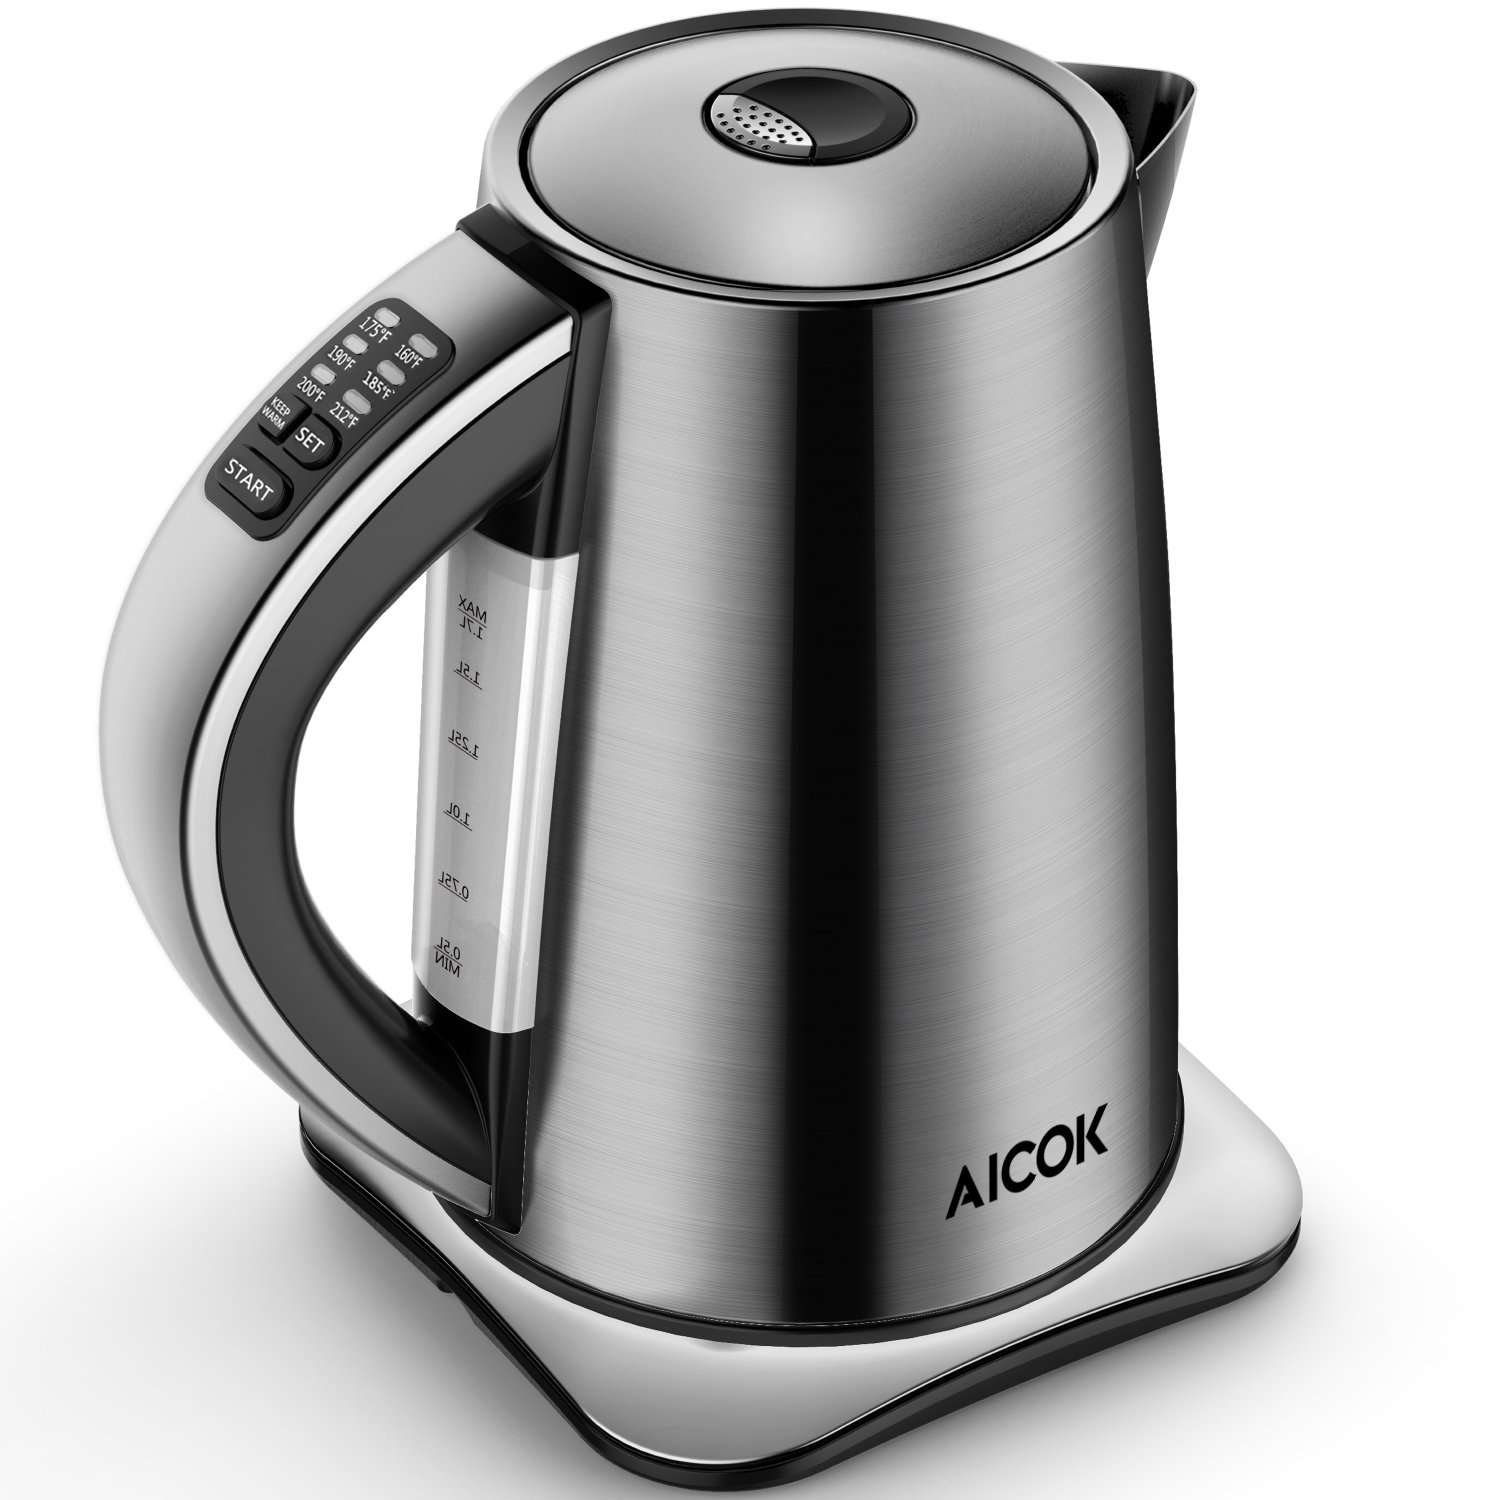 Aicok Electric Kettle Variable Temperature Tea Kettle, Stainless Steel Water Kettle with 1500W SpeedBoil, Auto Shut Off and Boil-Dry Protection Water Boiler, 1.7-Liter